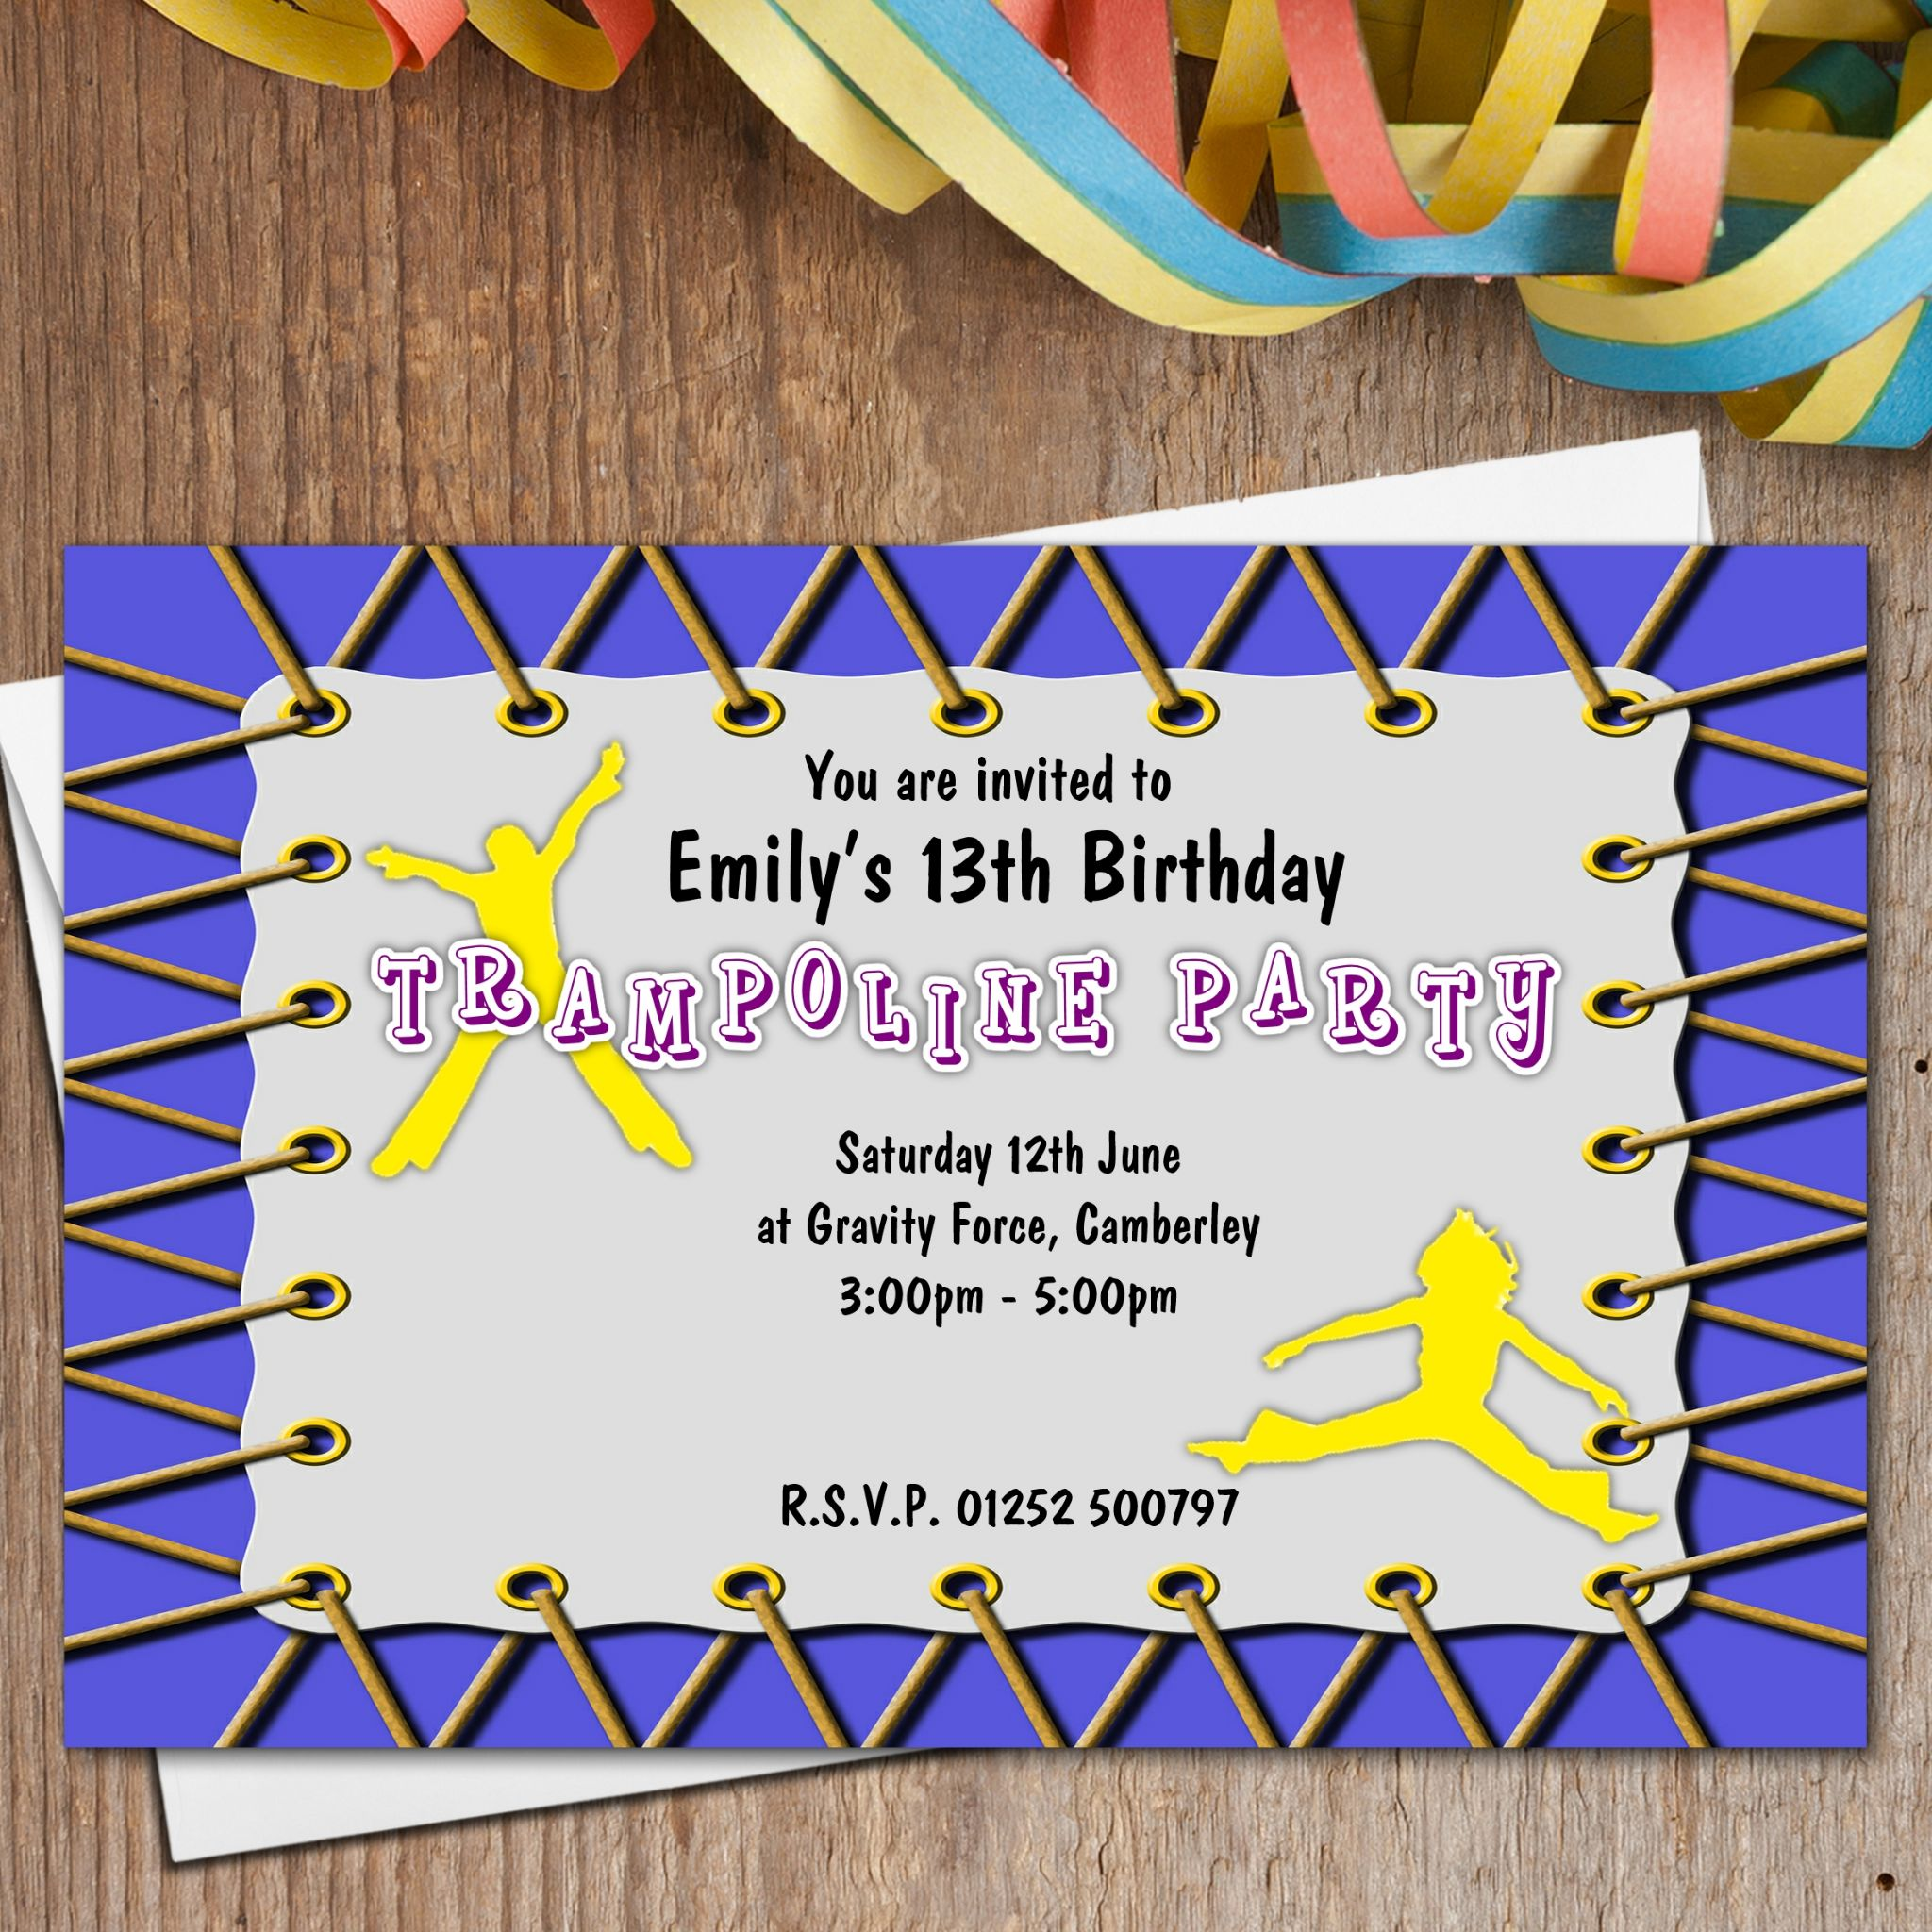 Trampoline Party Invitations: 10 Personalised Trampoline Birthday Party Invitations N189